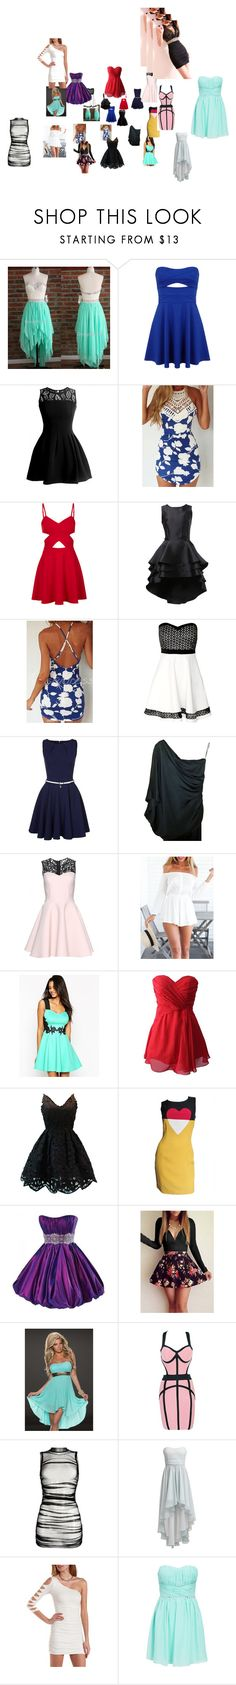 """""""Dresses"""" by love-sexting ❤ liked on Polyvore featuring Miss Selfridge, Topshop, Closet, Chanel, Chicnova Fashion, Lipsy, Moschino, Maggie Sottero, Dolce&Gabbana and Swing"""